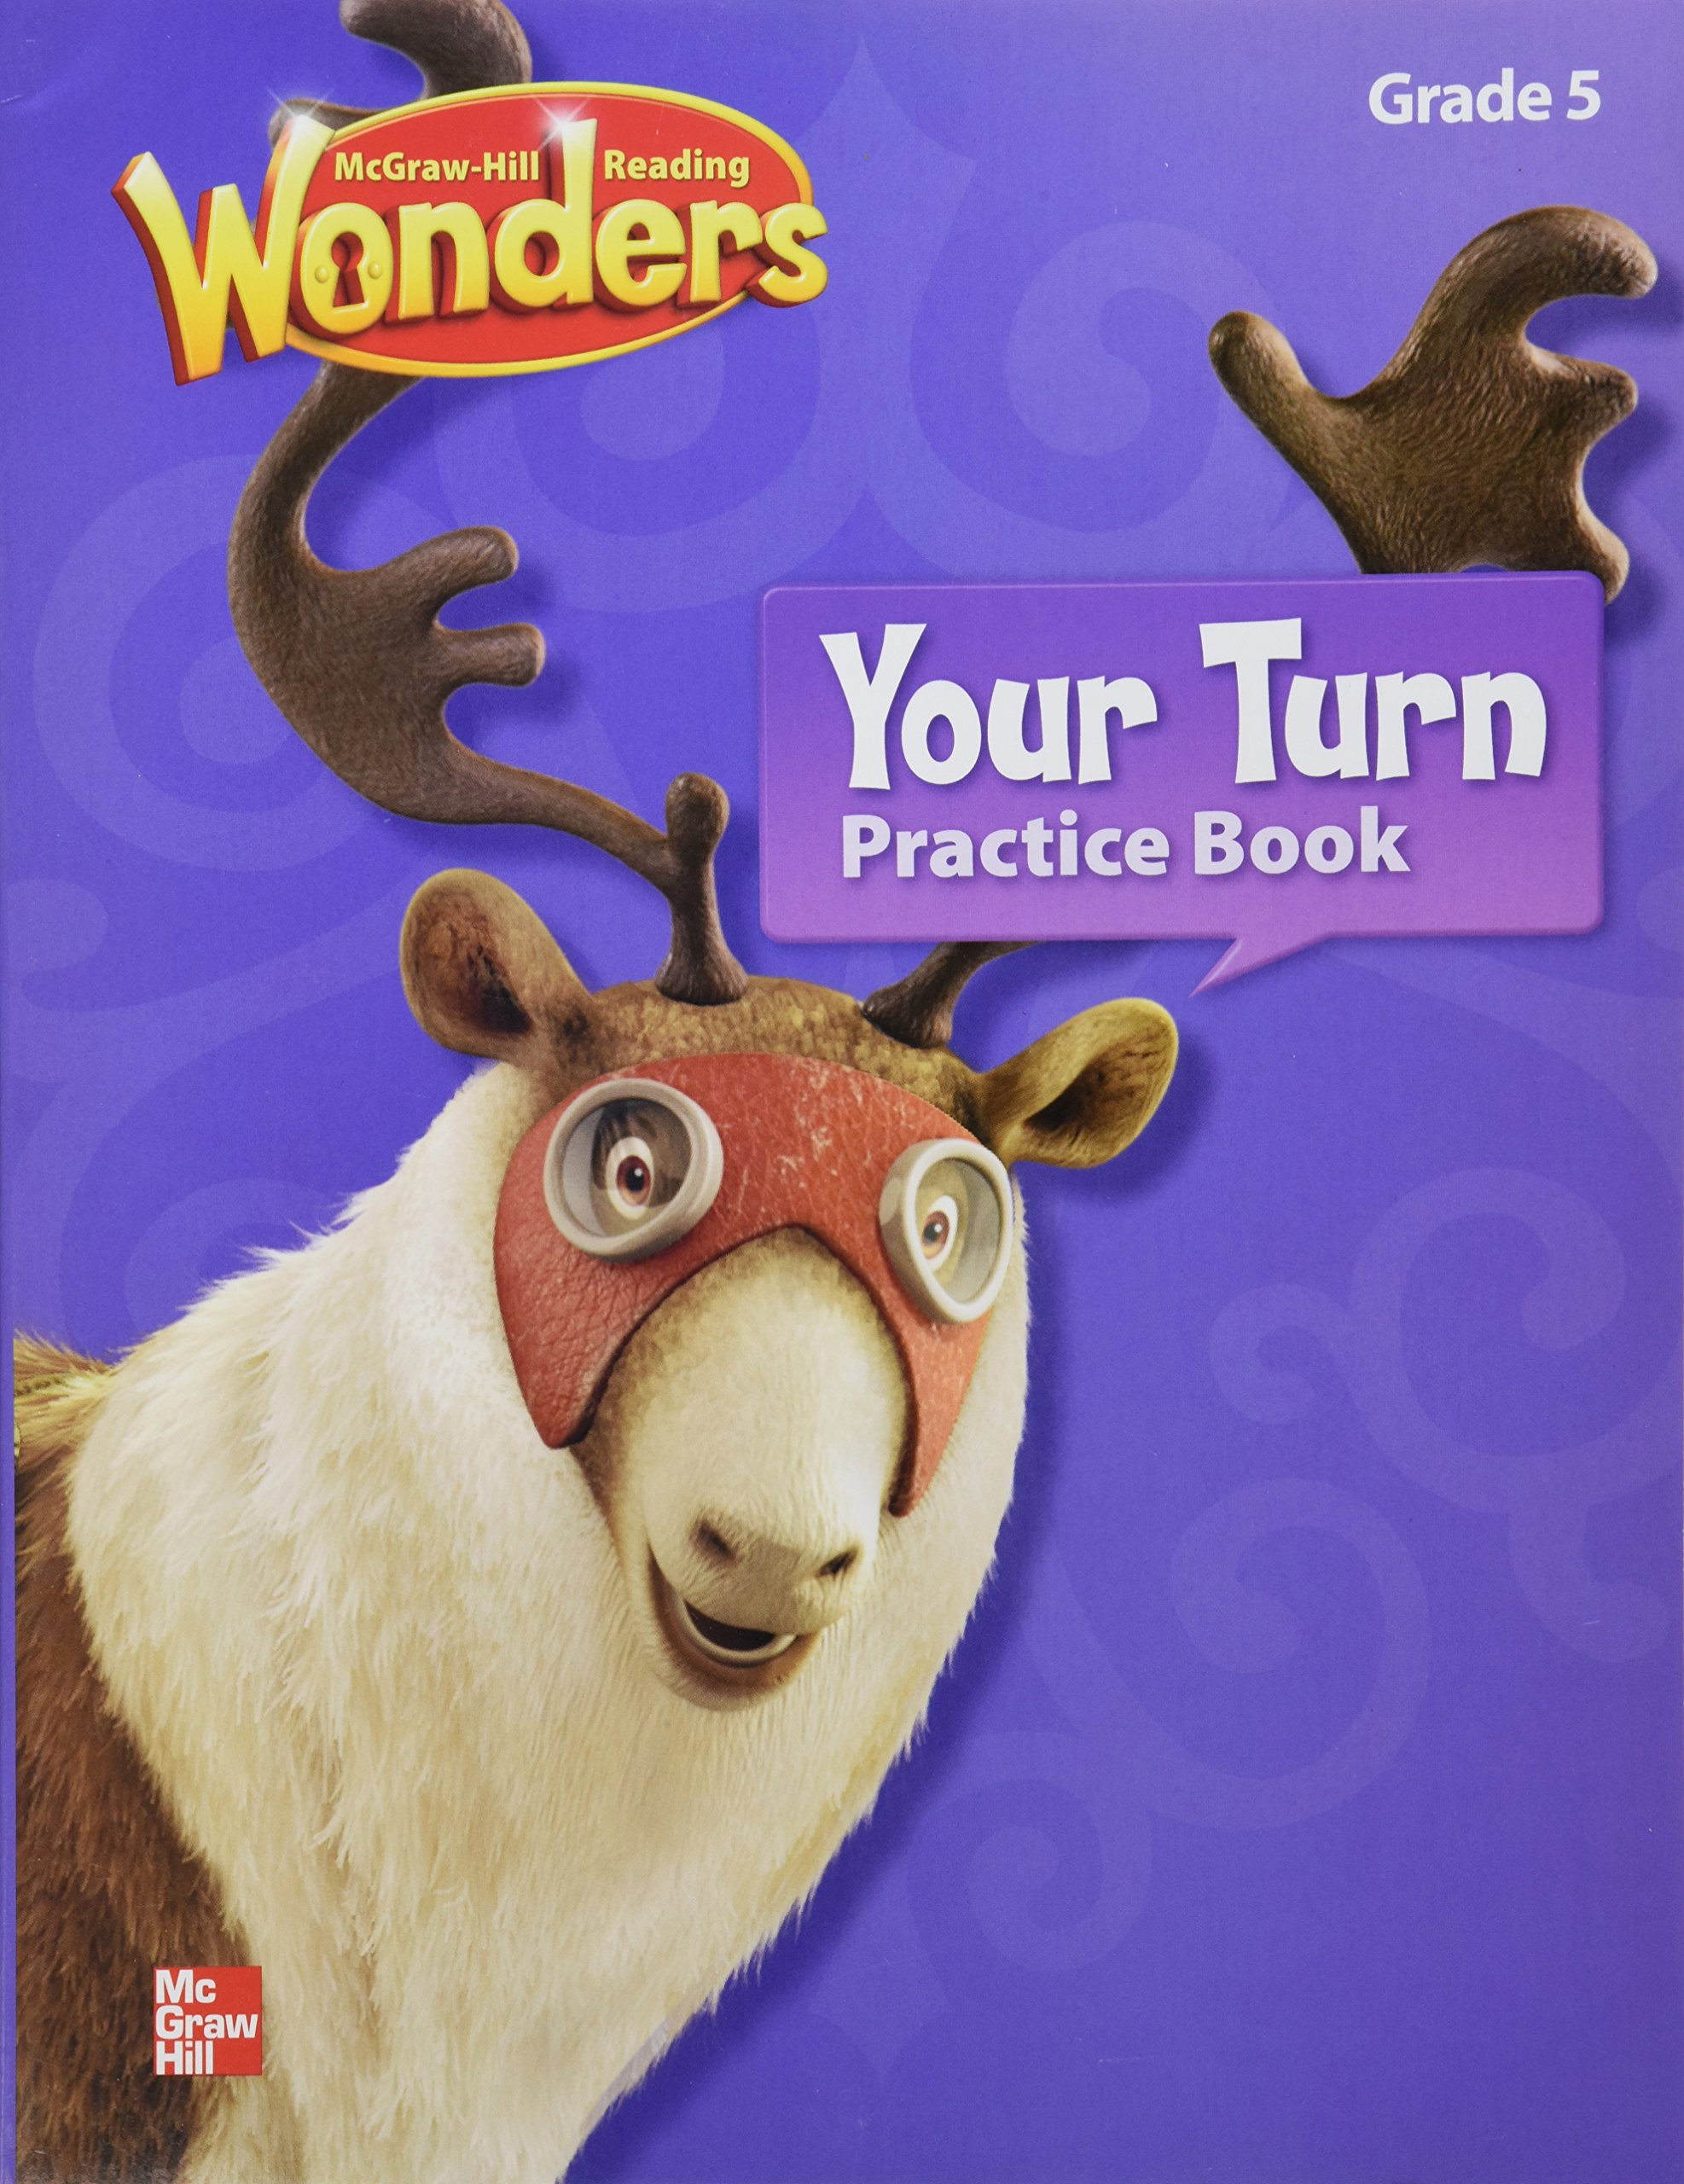 Reading Wonders, Grade 5, Your Turn Practice Book: McGraw-Hill